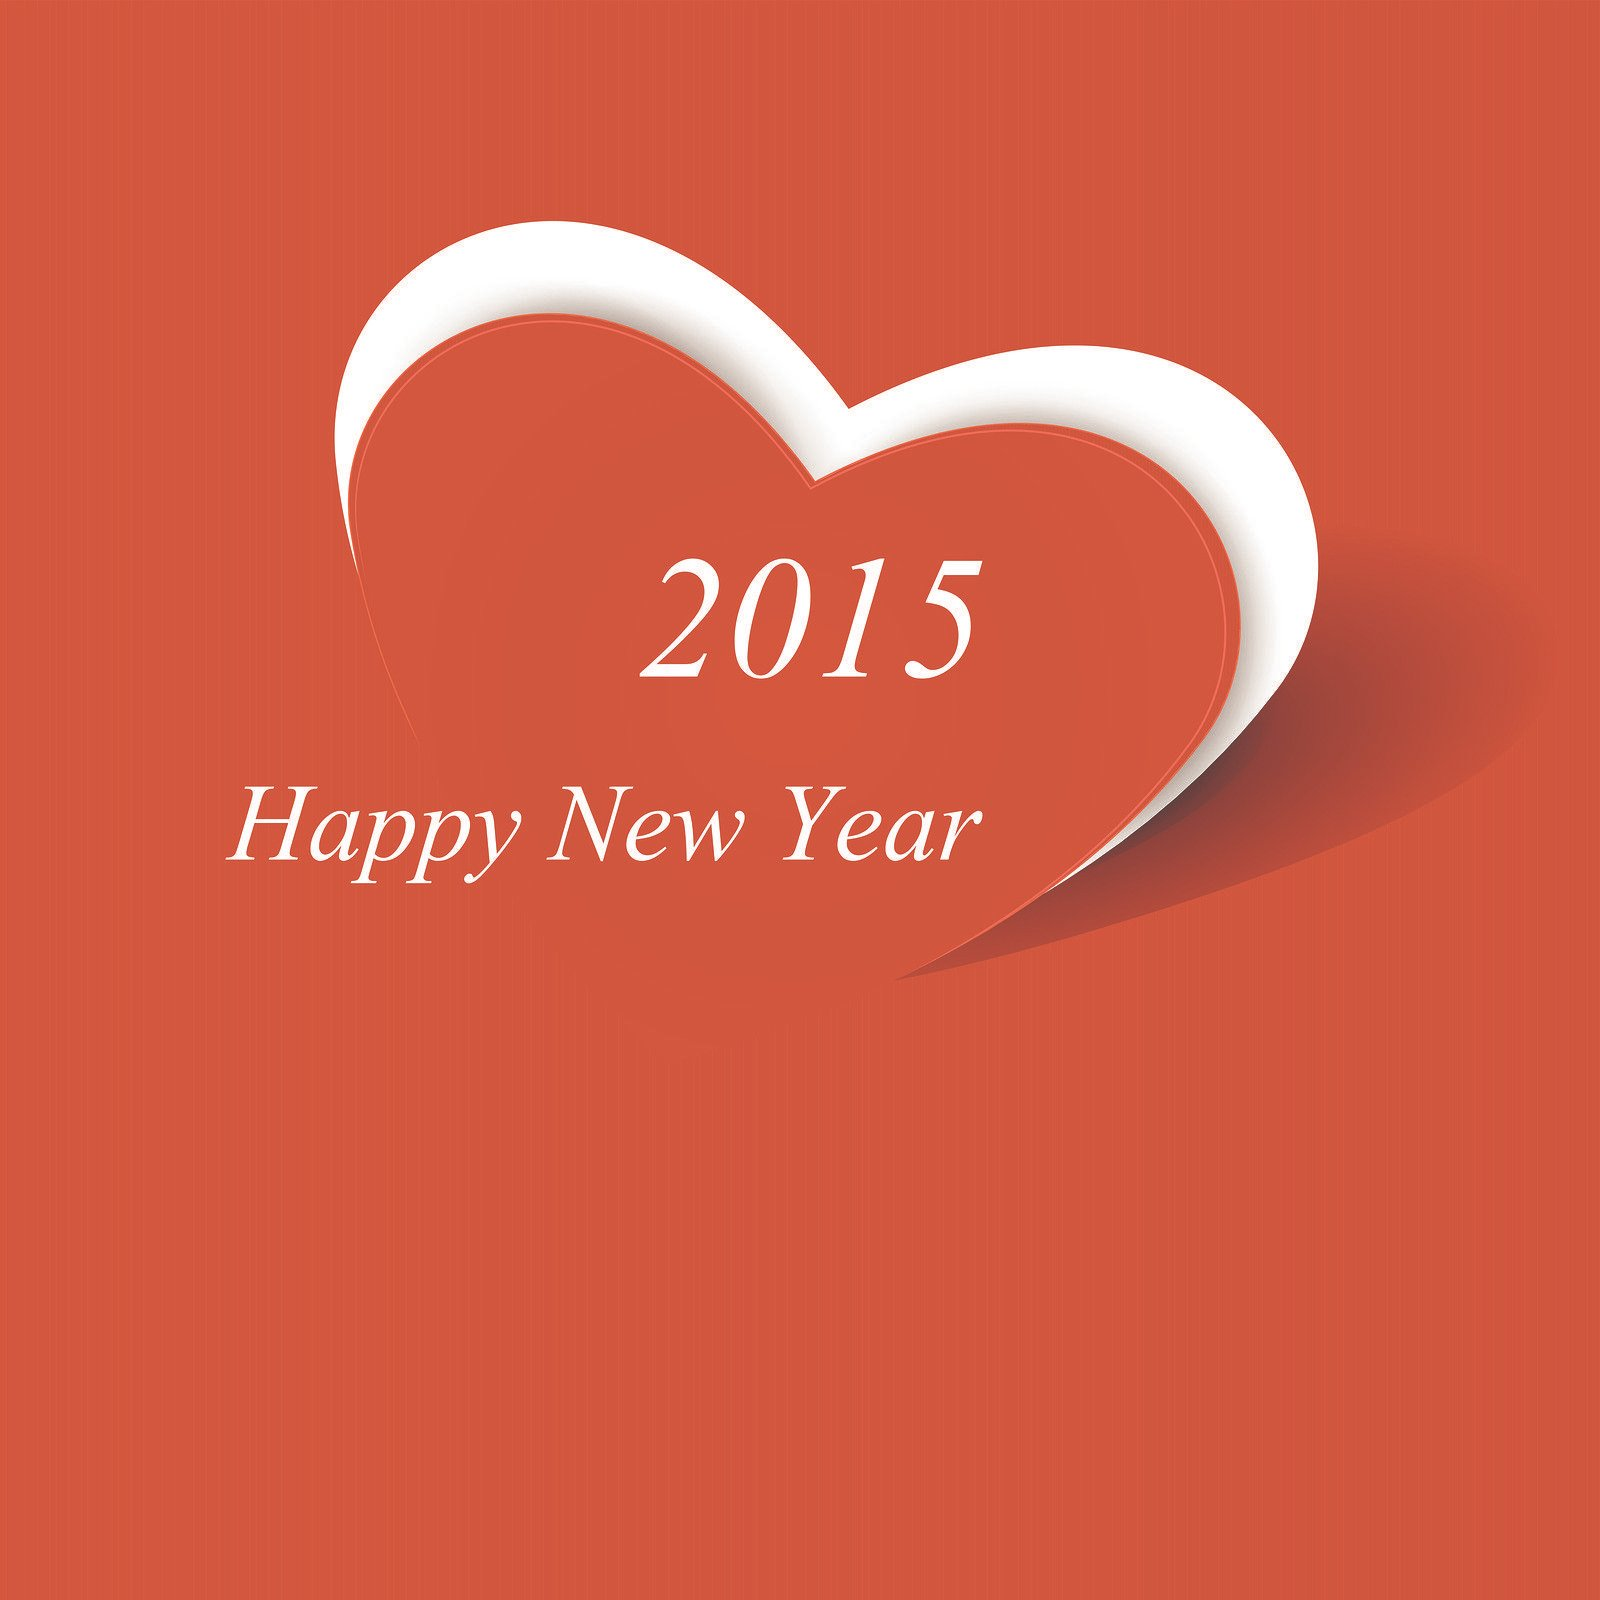 Love Wallpapers New 2015 : Happy New Year 2015 Love Wallpapers - Wallpaper cave